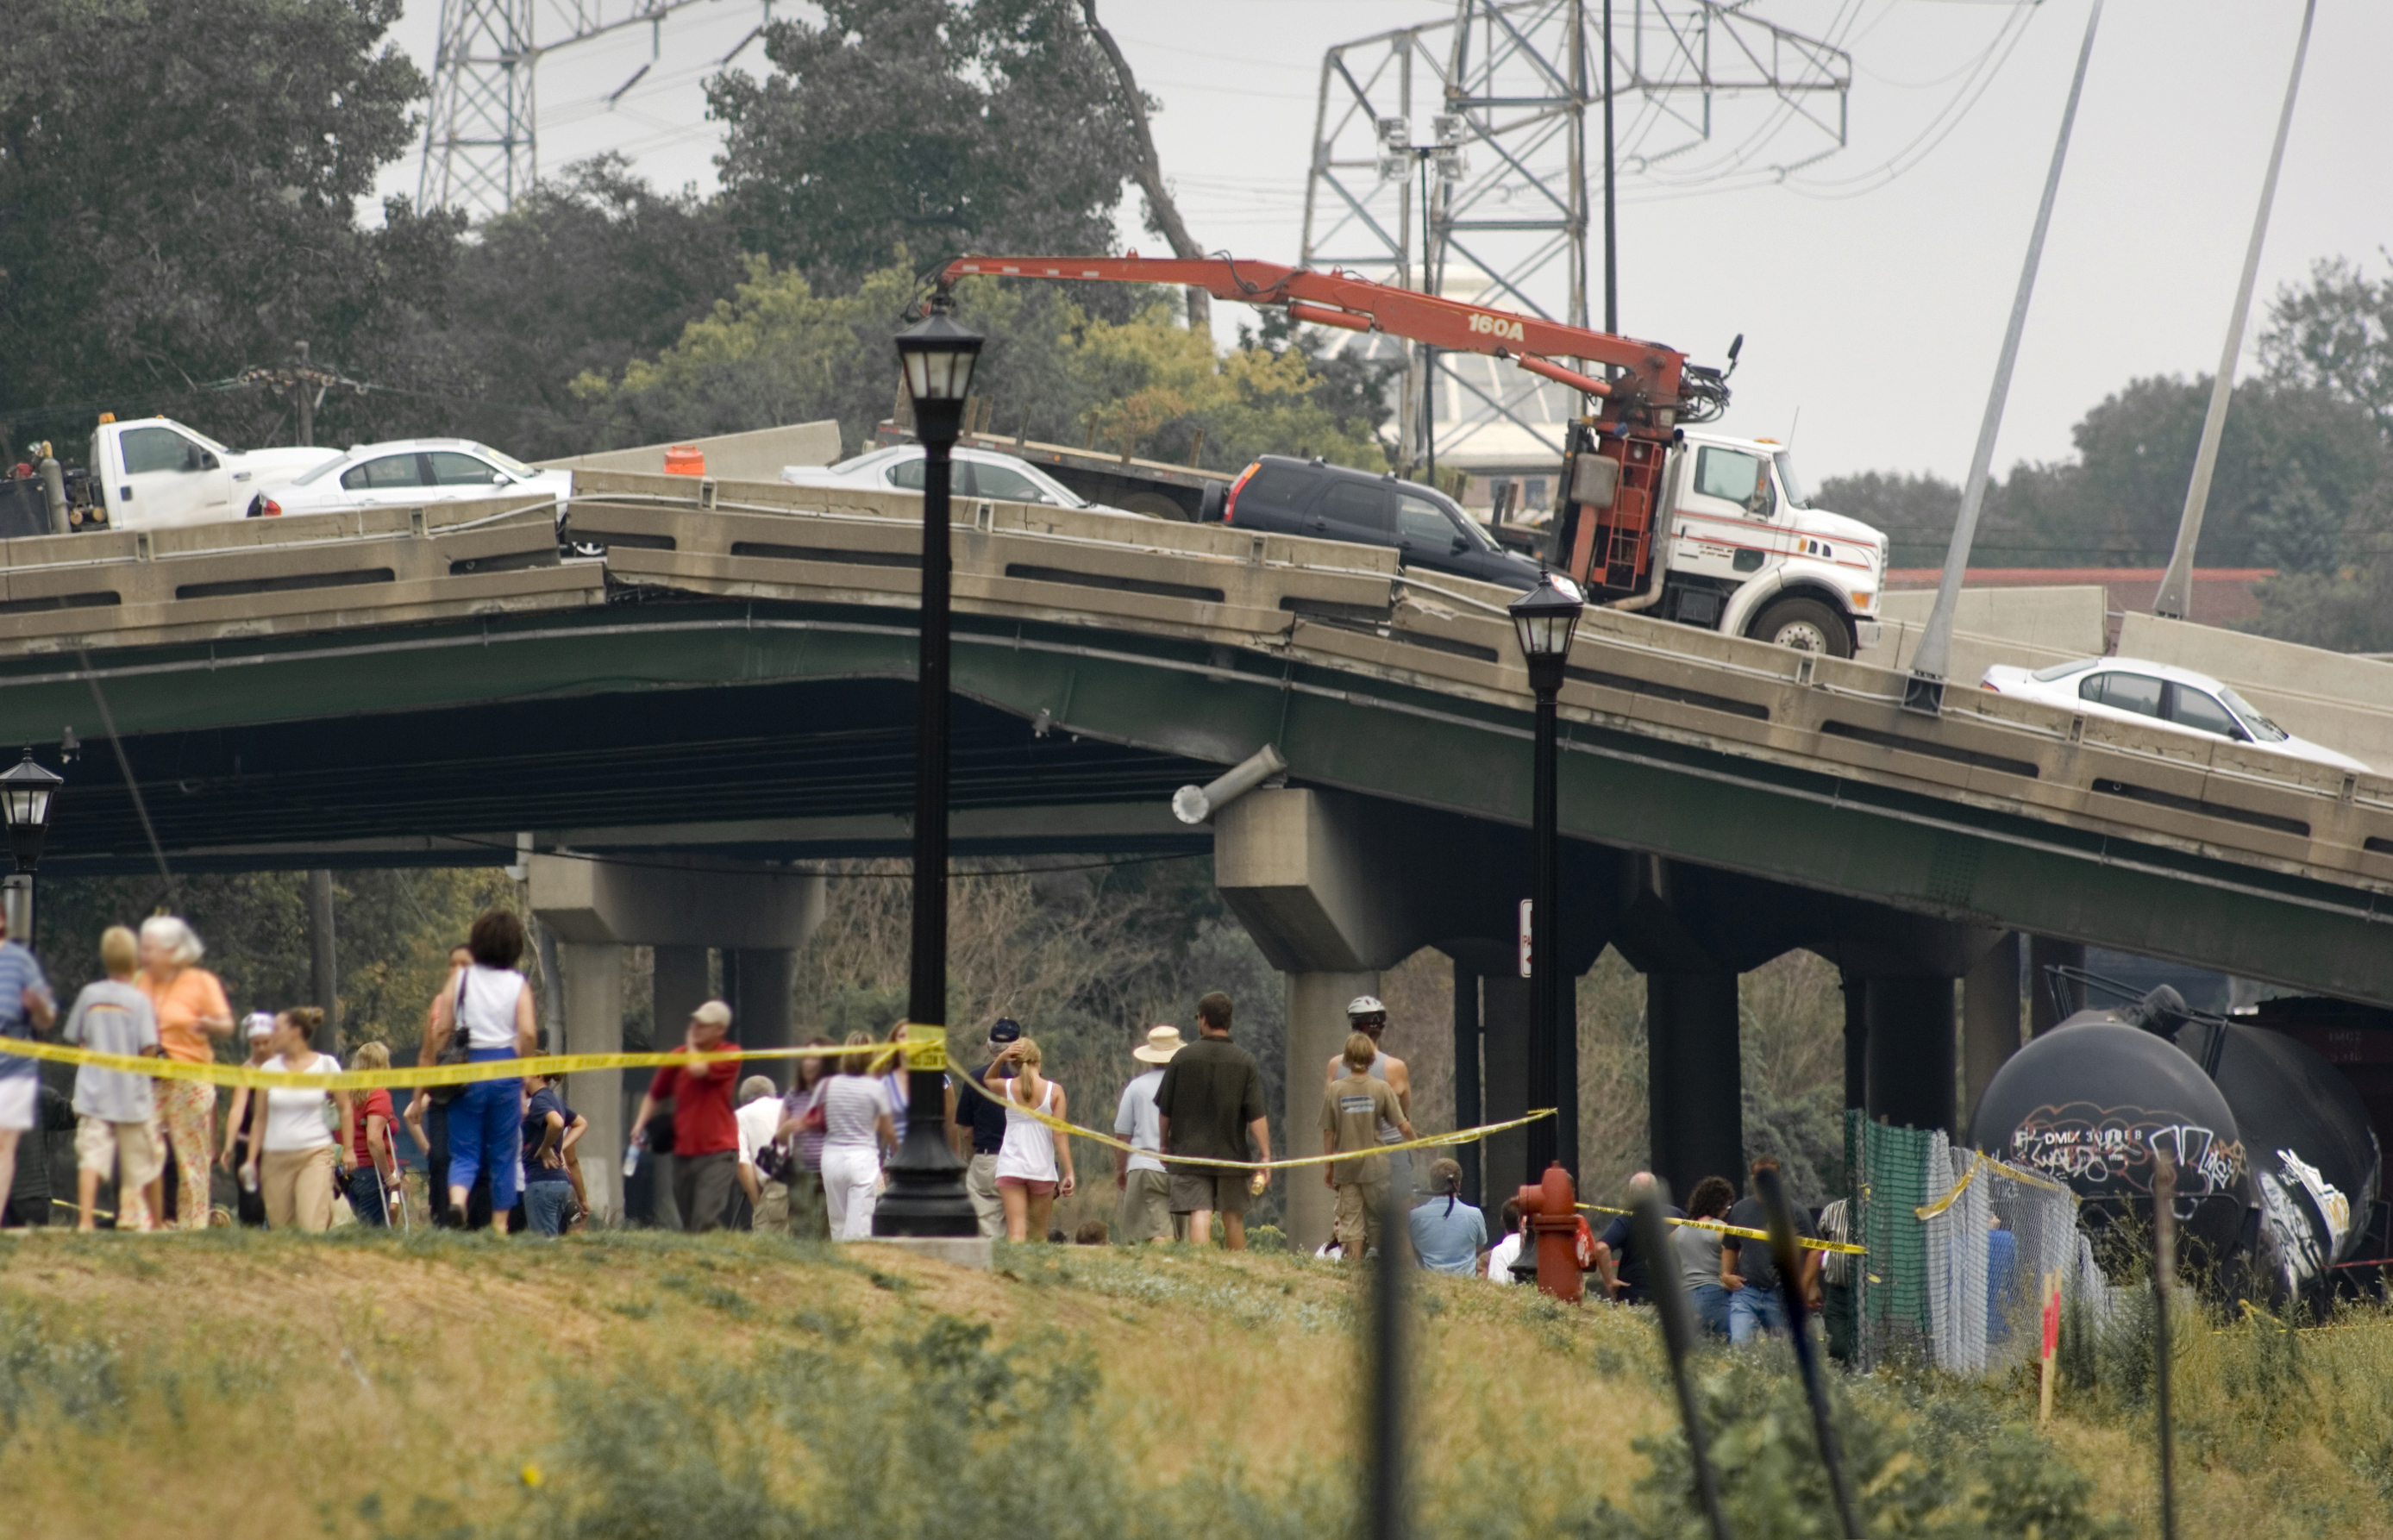 A scene from the 2007 collapse of the Interstate 35 bridge near Minneapolis.